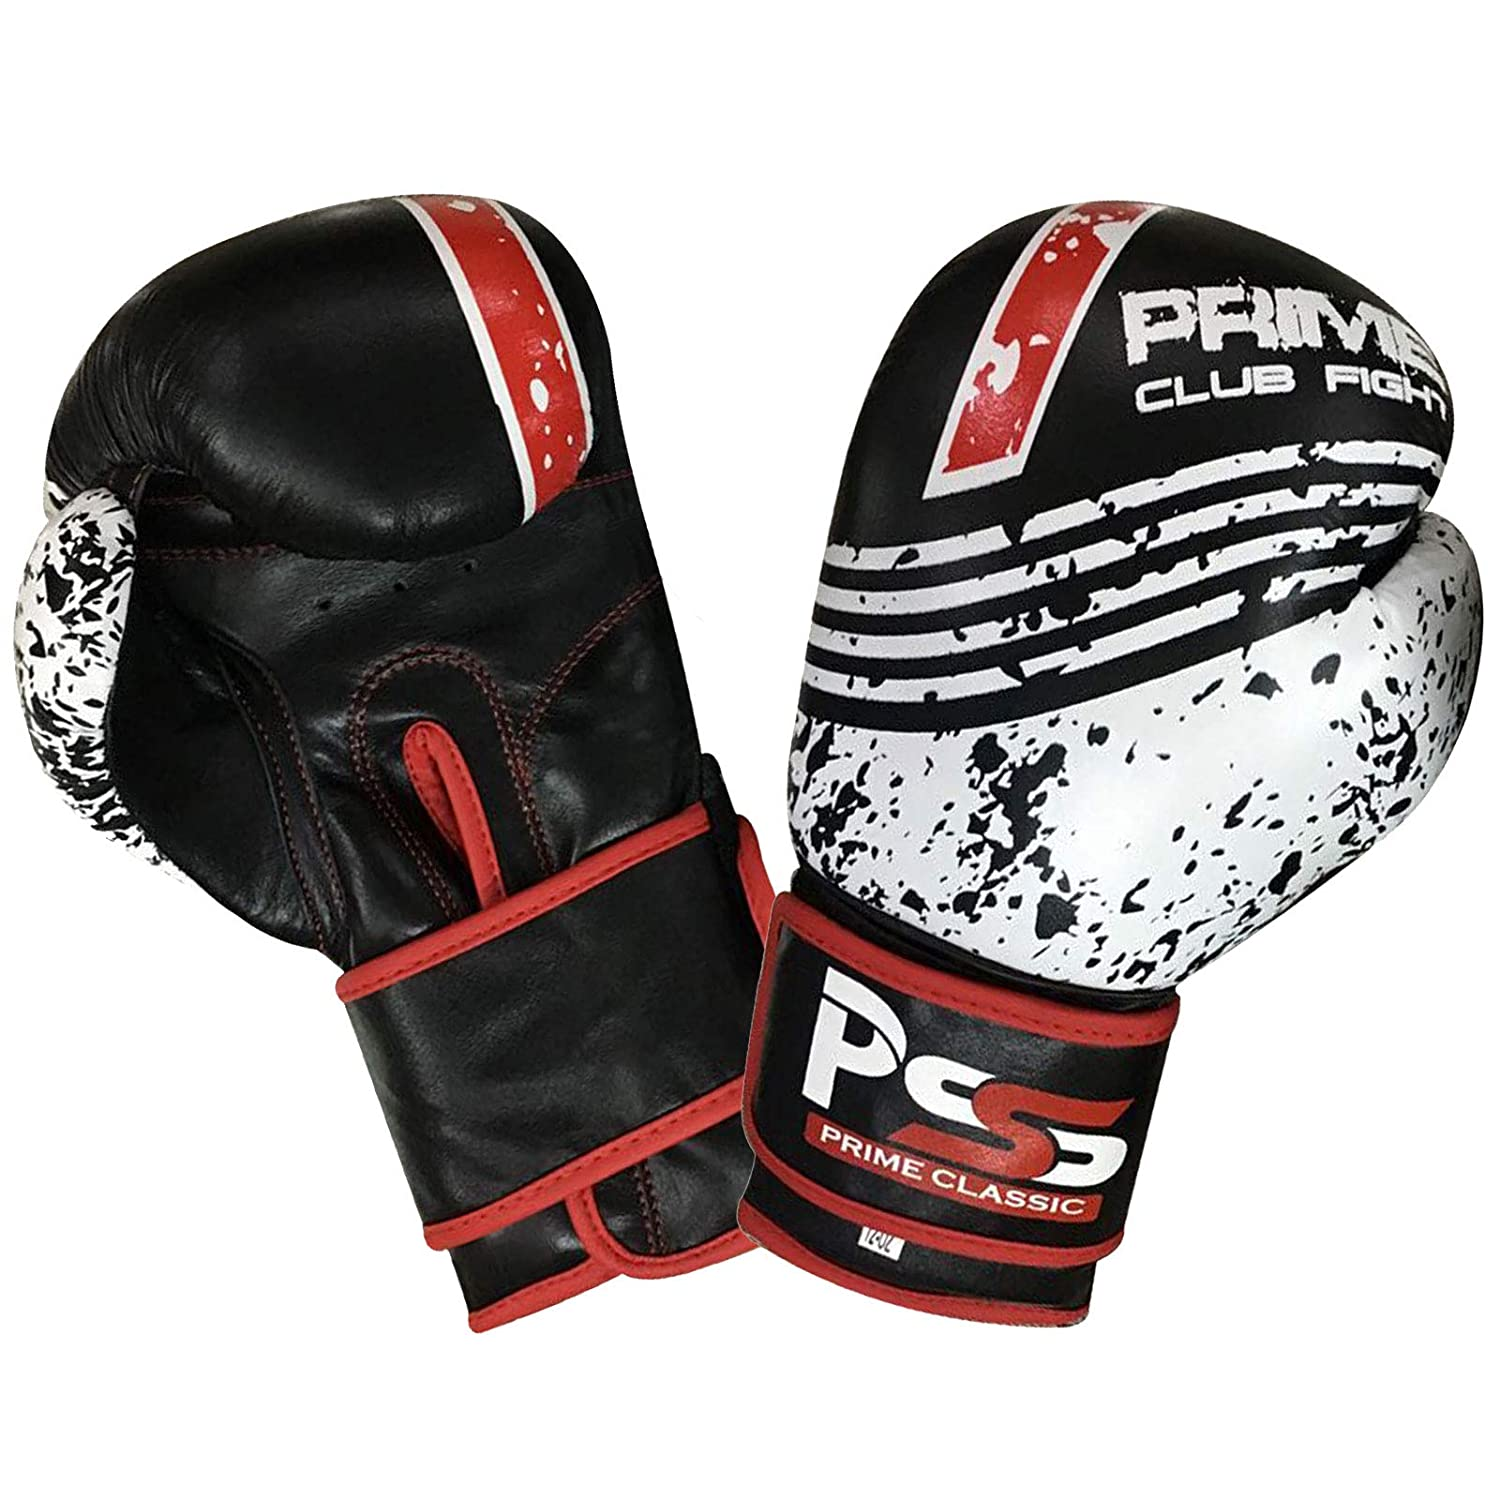 Prime Real Leather Boxing Gloves Punch bag Training Mitt Kick Boxing Fight Adult Sizes 1051-1053